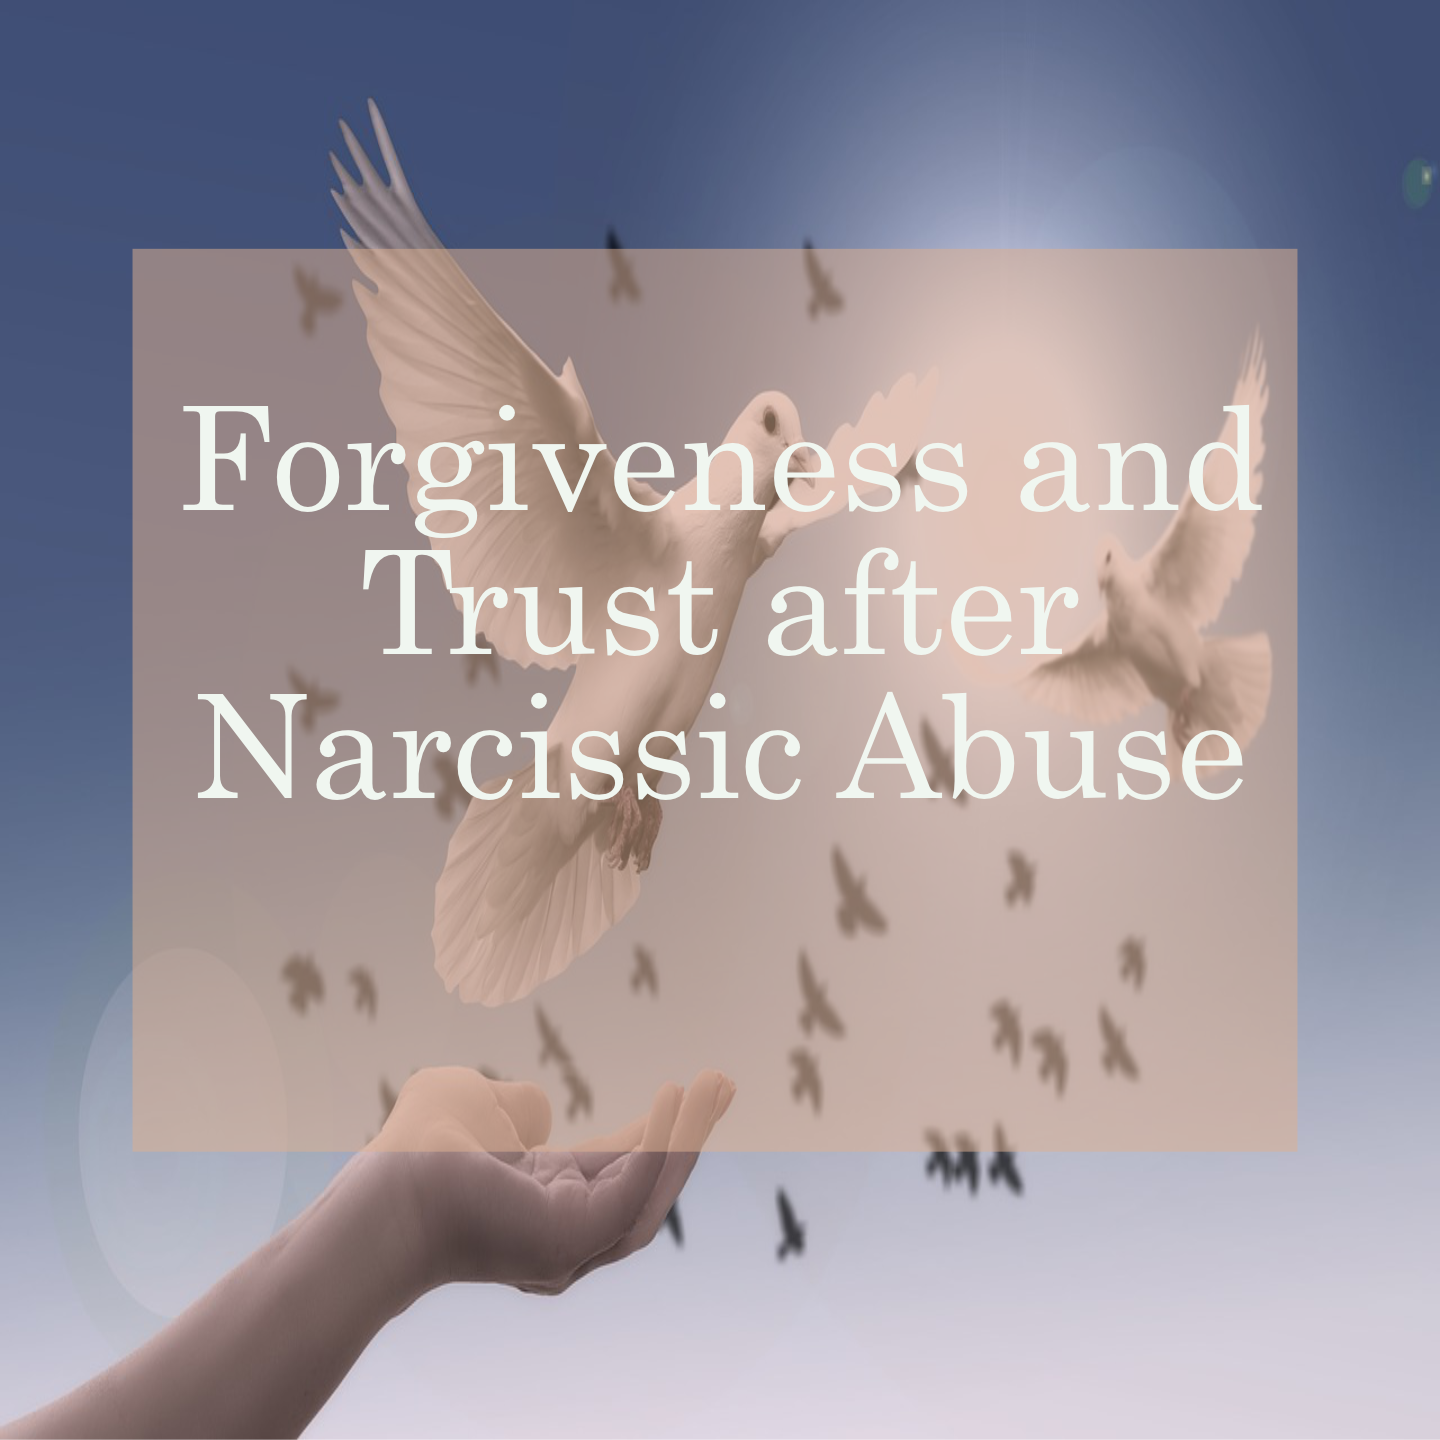 Forgiveness and trust after Narcissistic Abuse - Is it possible?